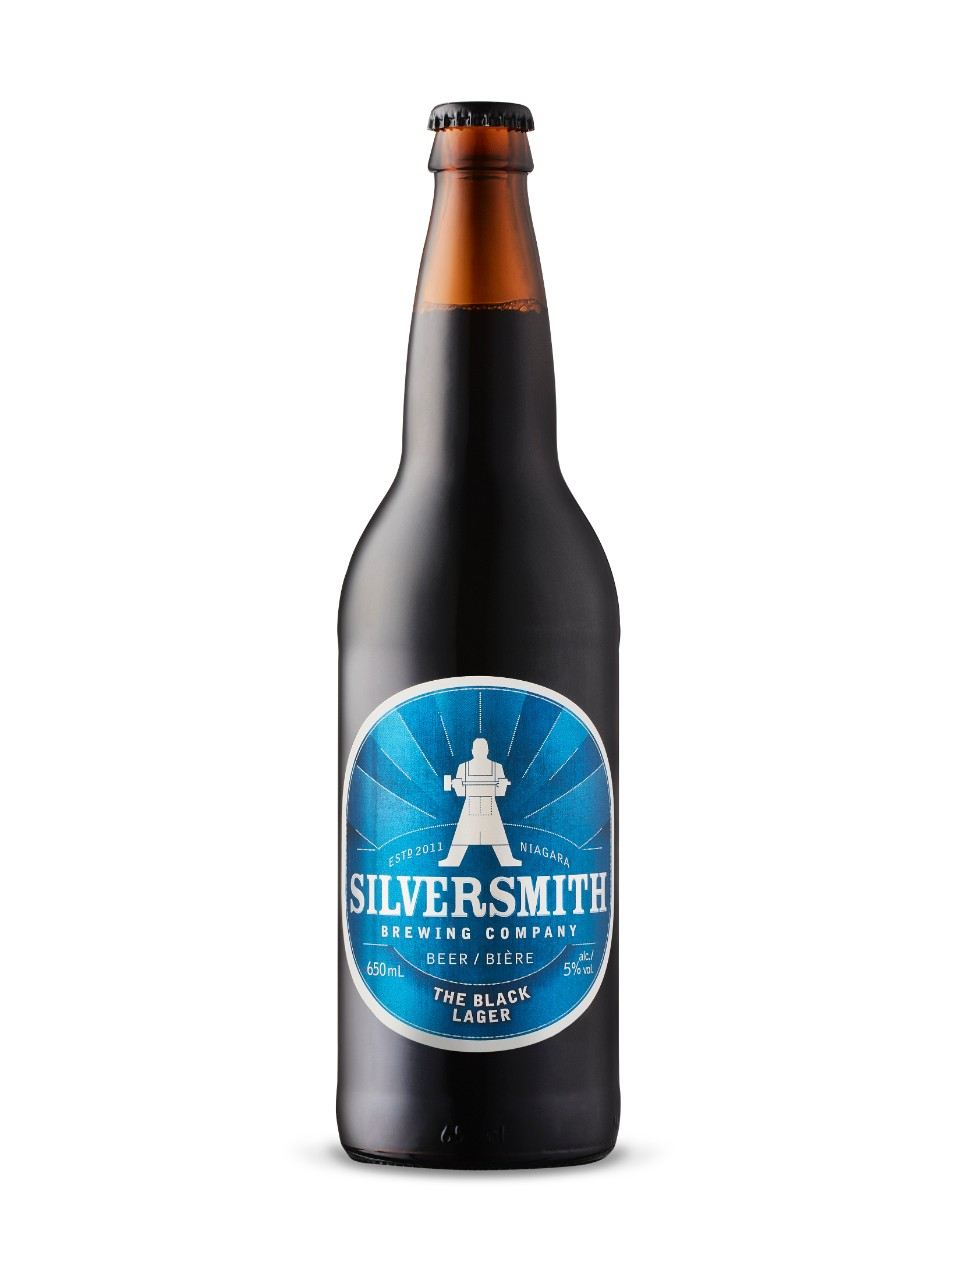 Silversmith The Black Lager